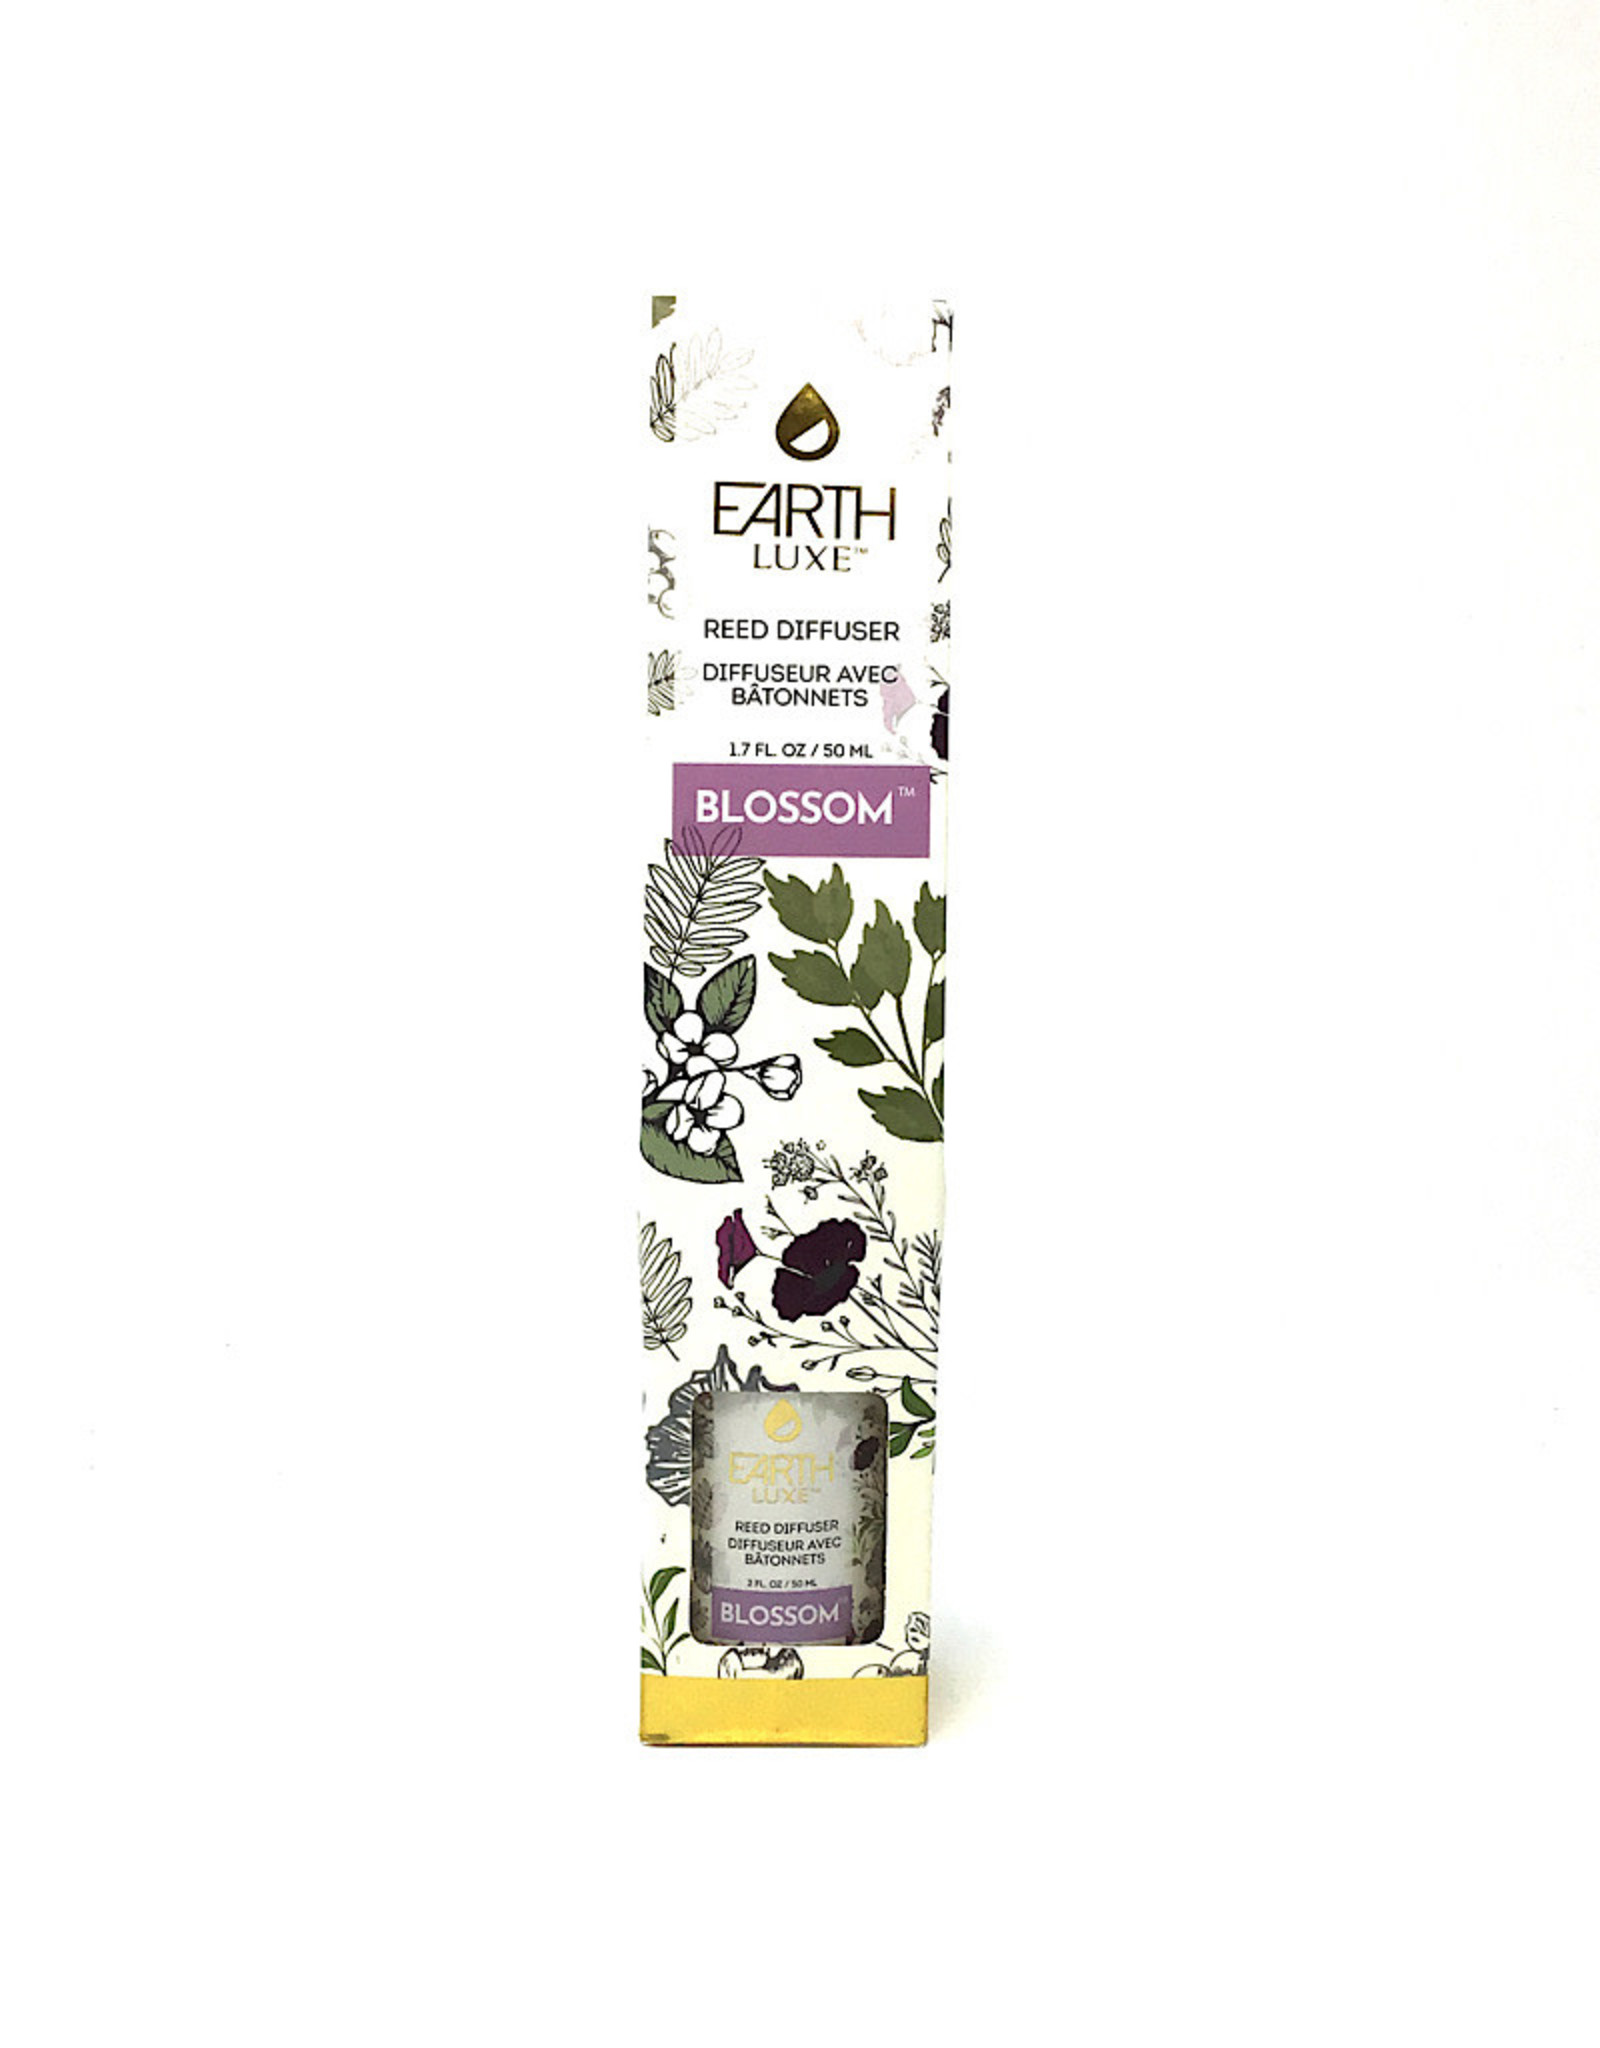 Earth Luxe Reed Diffuser 50ml